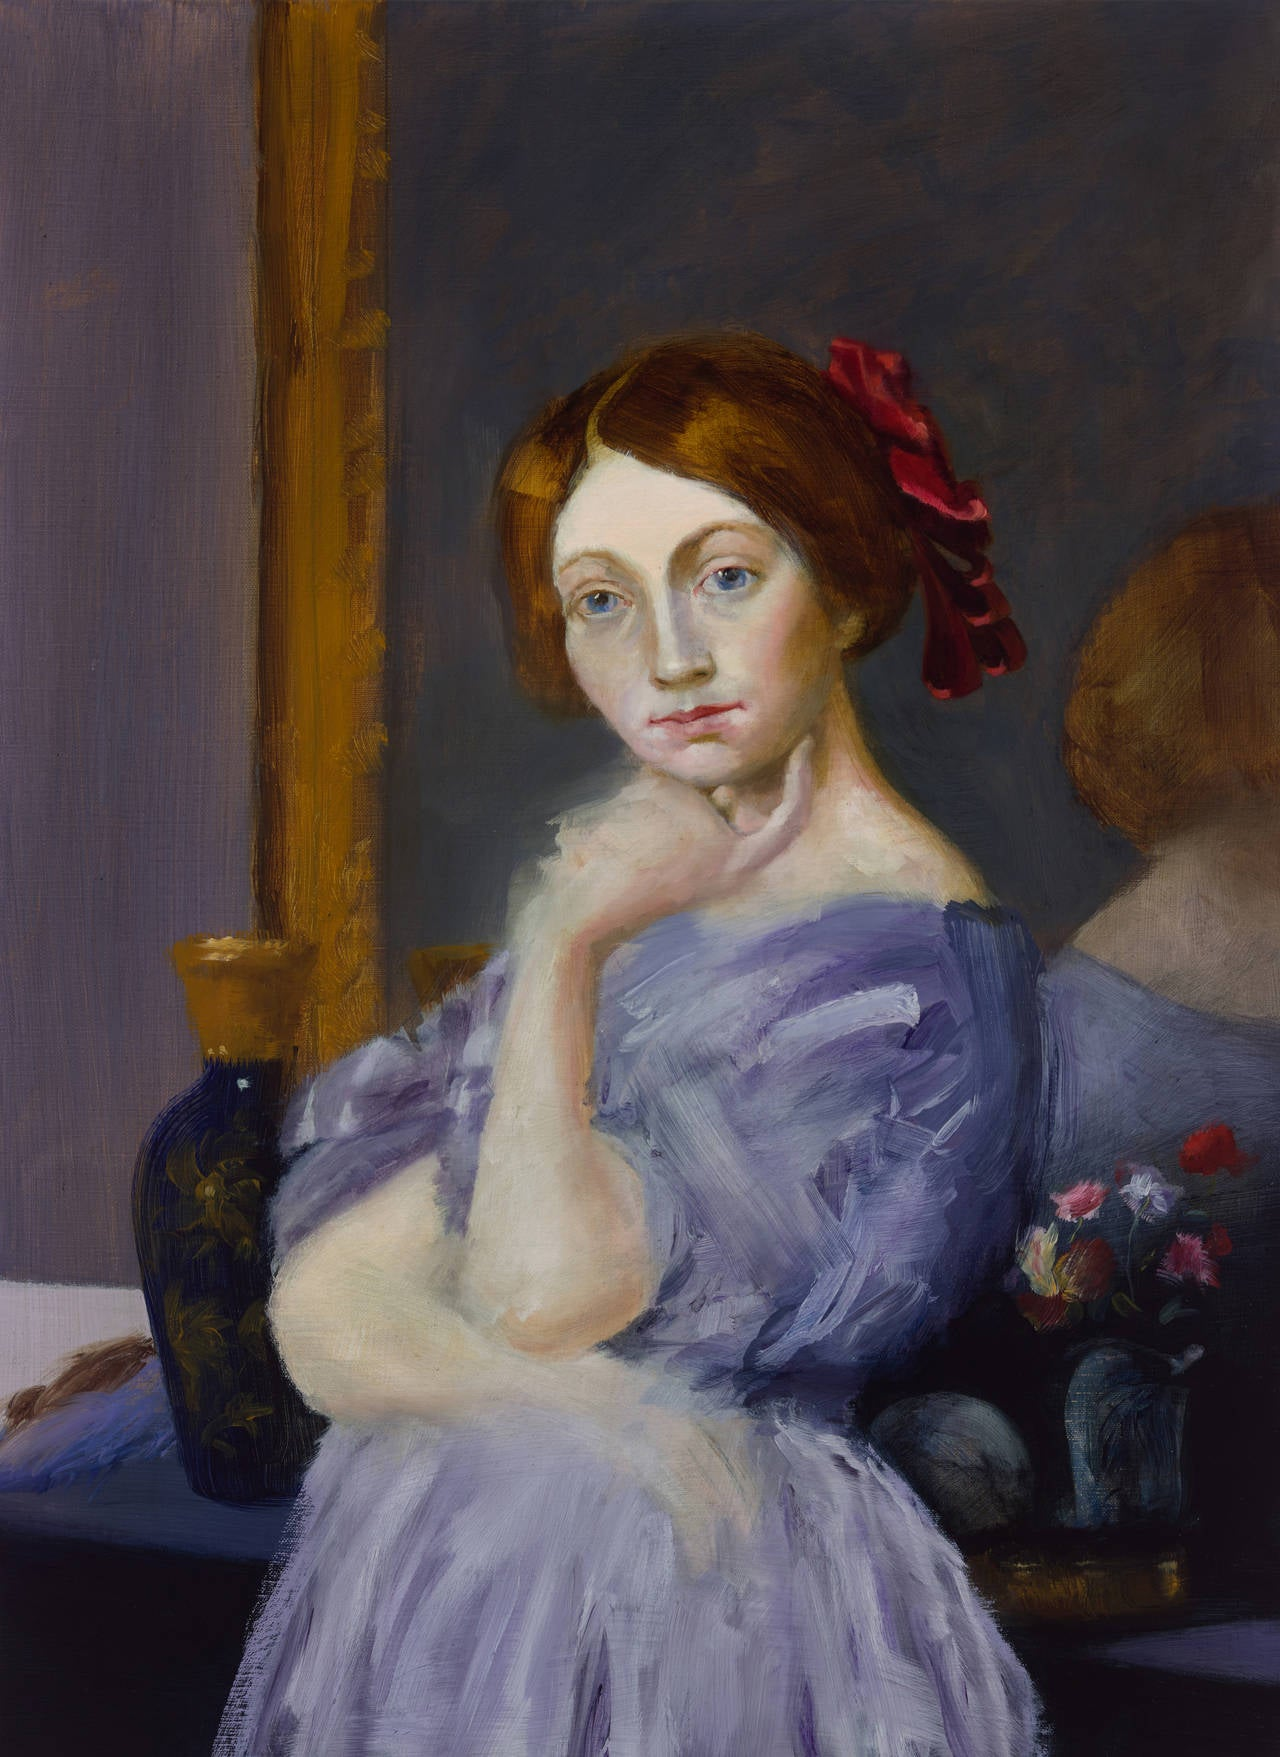 Elise Ansel Portrait Painting - The Red Ribbon (after Ingres)